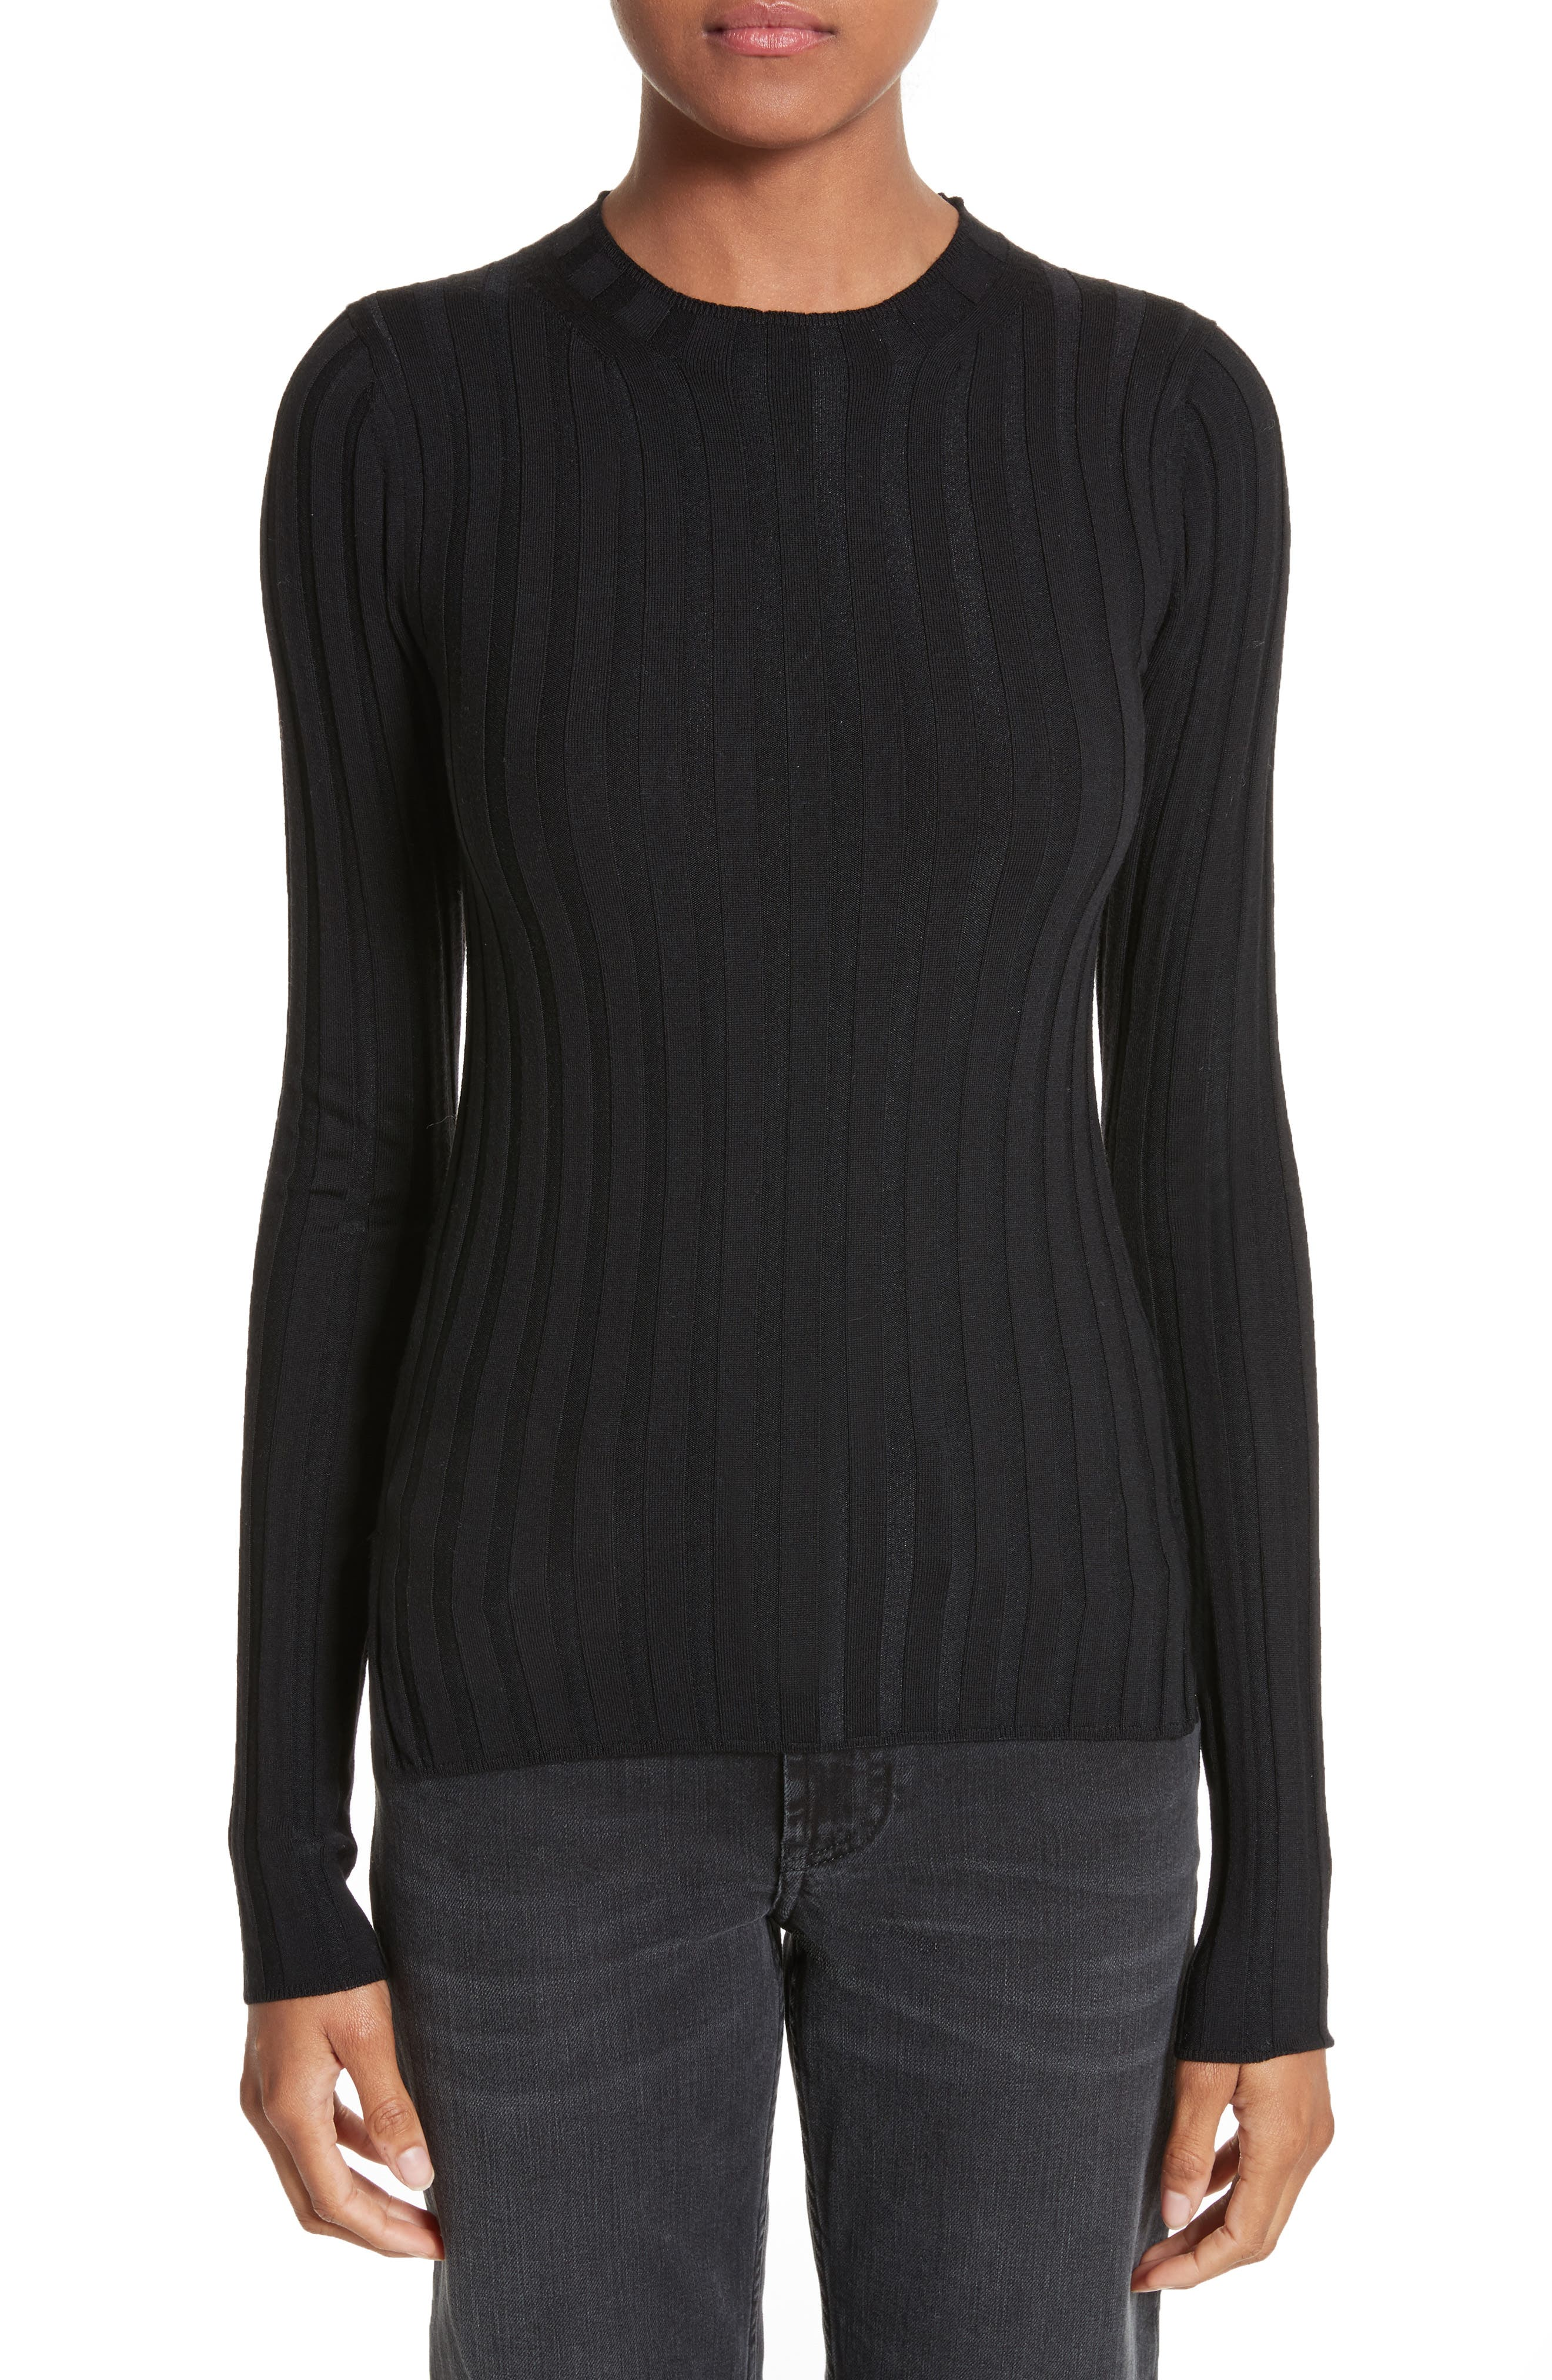 ACNE Studios Carina Fitted Crewneck Sweater